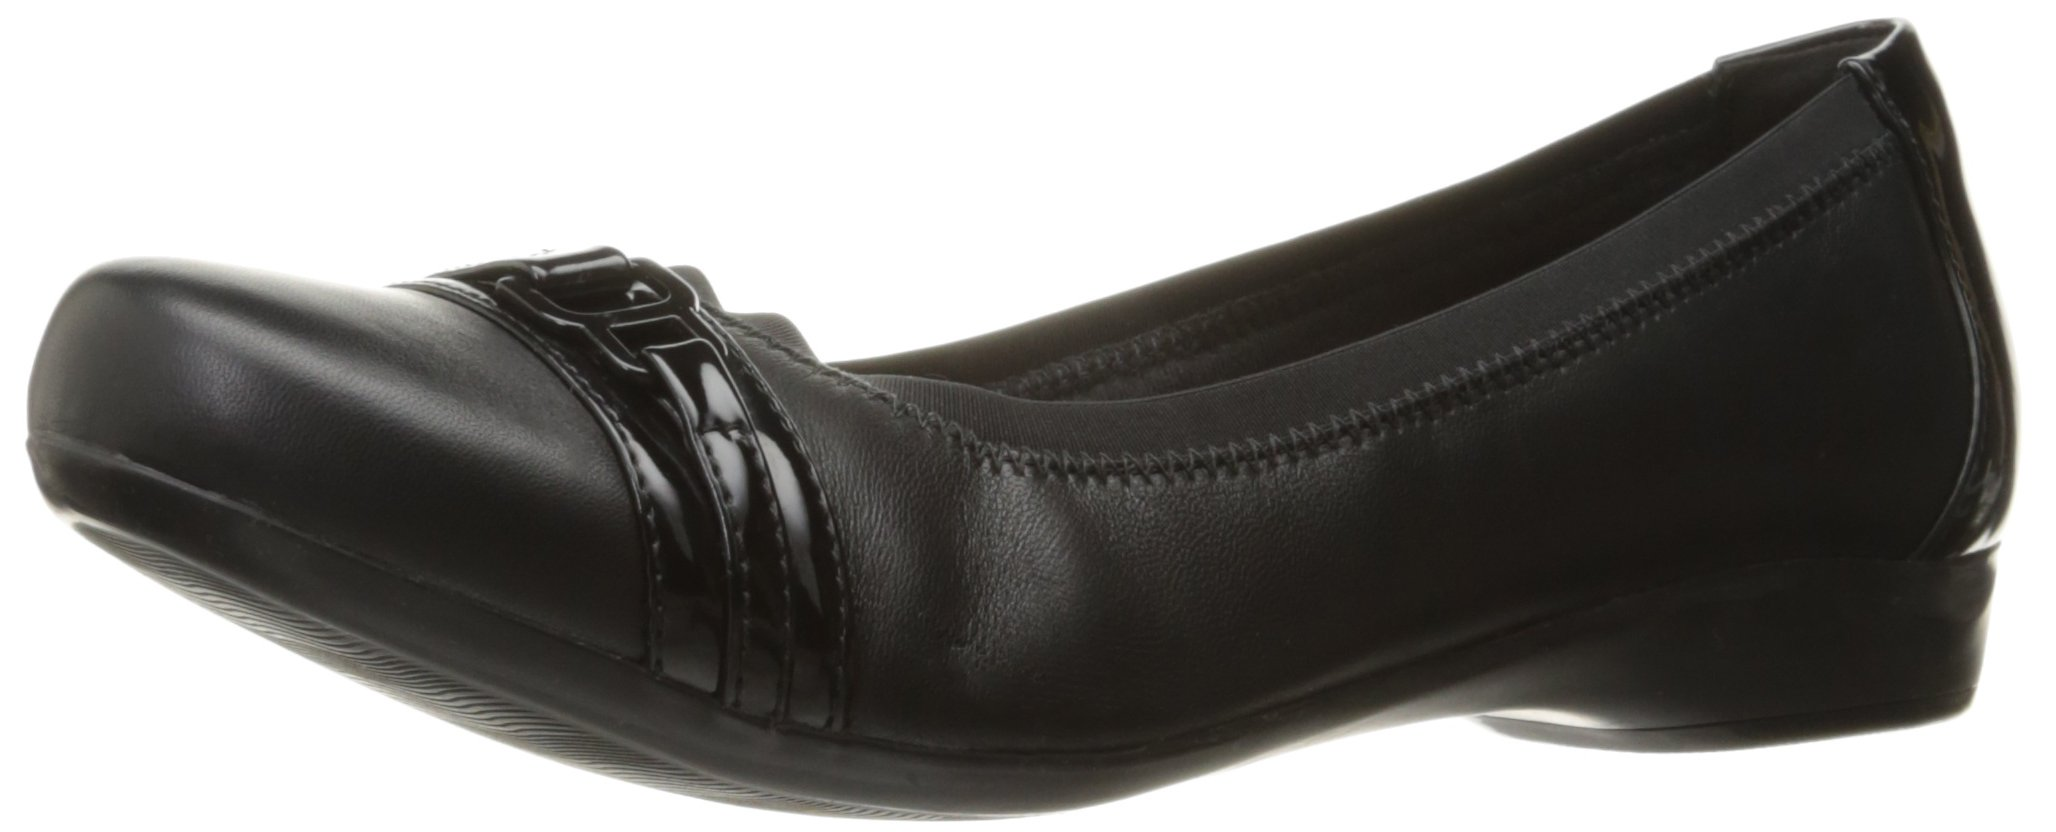 CLARKS Women's Kinzie Light Flat, Black Combi, 8 M US